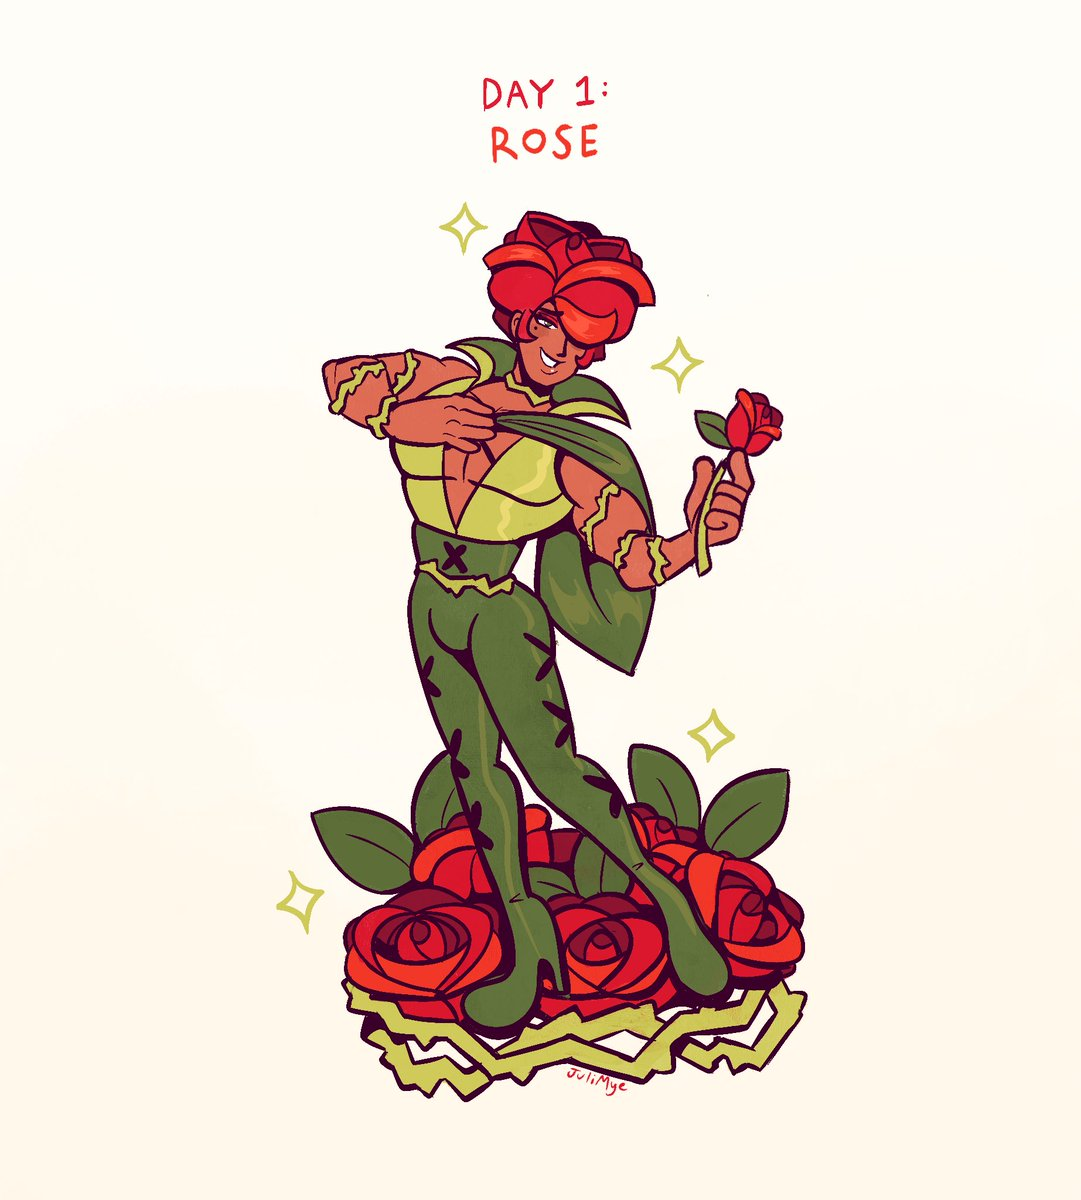 beginning of my #sketchtember /#bloomtober thread!!  Each day this month ill be drawing a different flower but as a cute guy 💐🌹🌸🌻  heres the first 4! Rose, Echeveria, Hibiscus, Garlic Flower #inktober2020